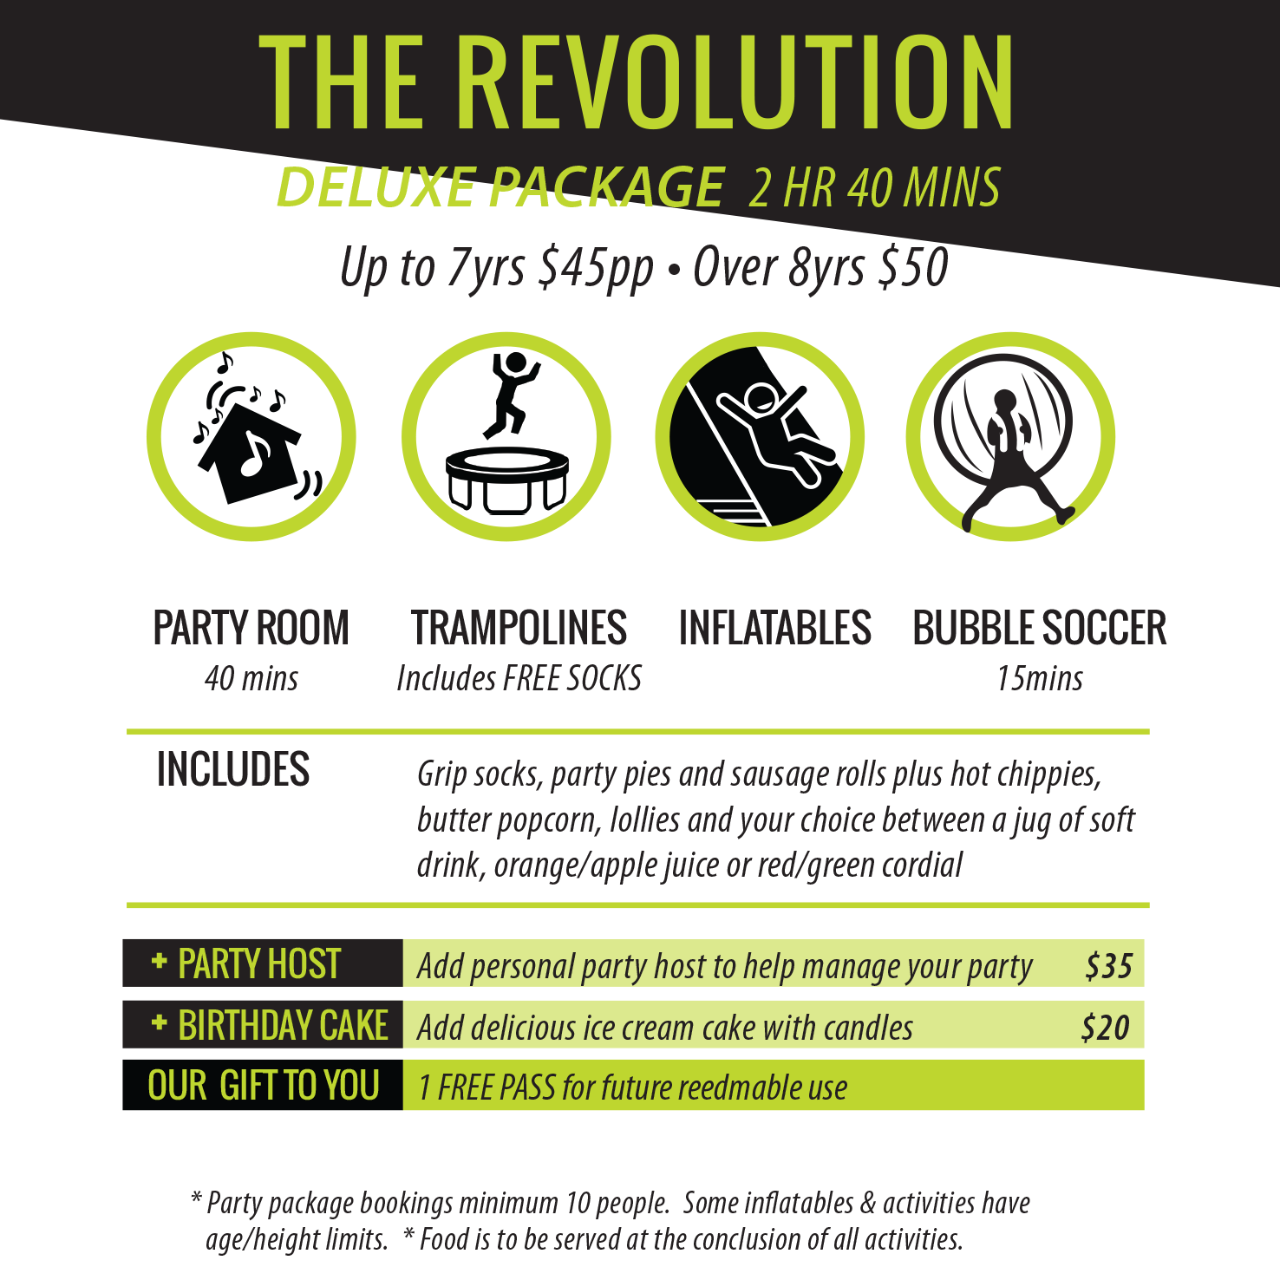 The Revolution Deluxe Package [8 Years old +]